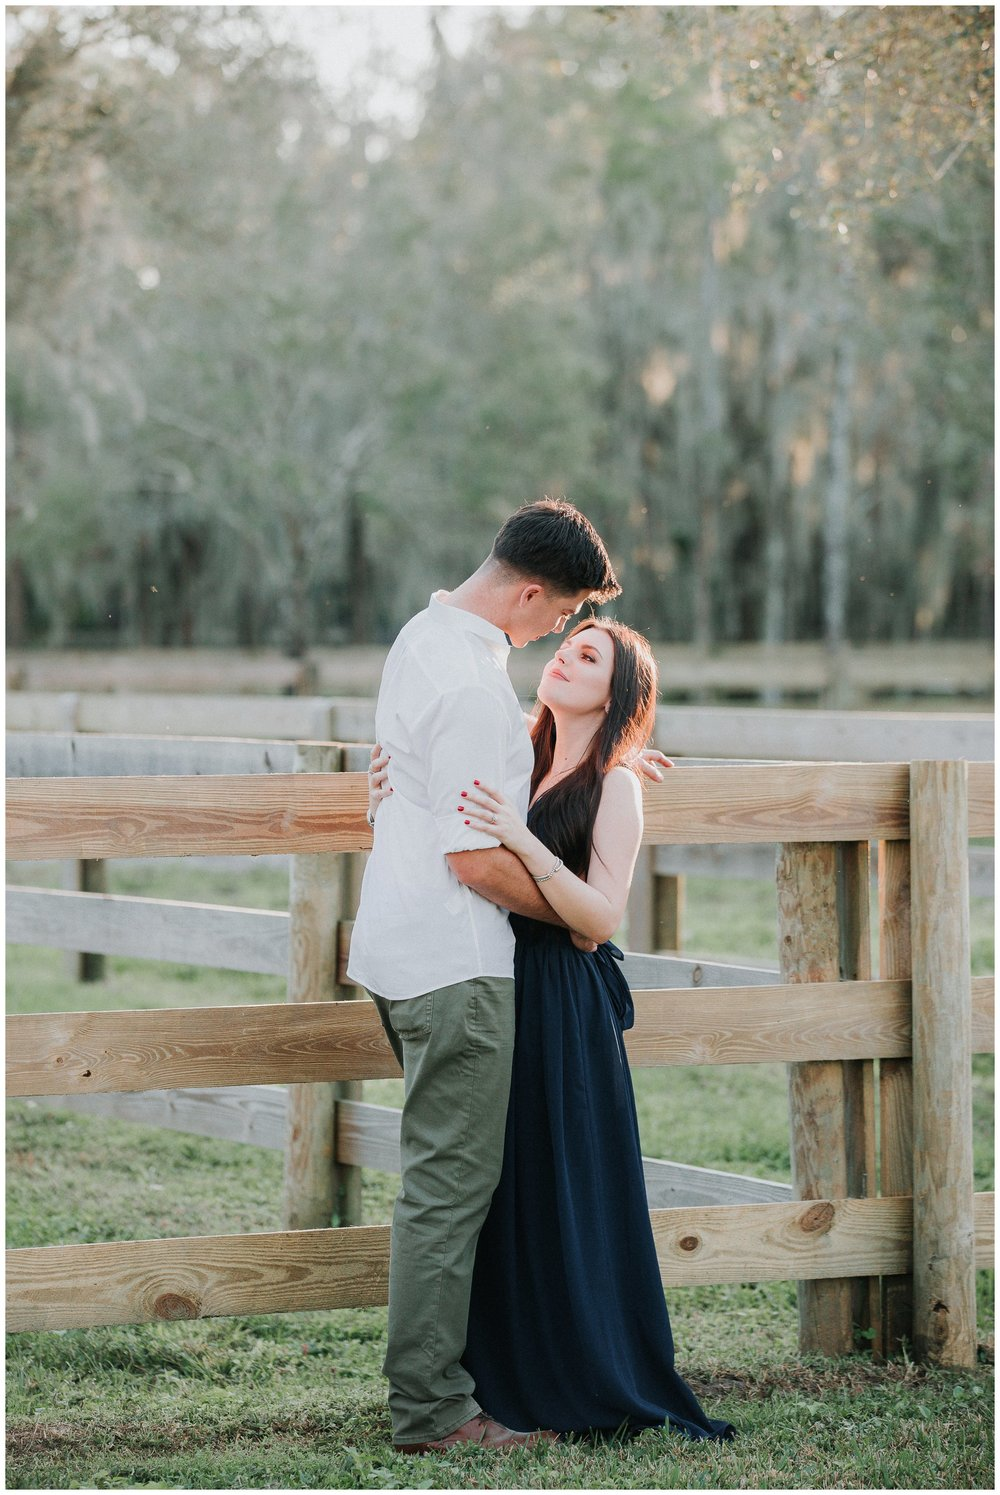 BMR Stables Wedding-BMR Stables Engagement Session-Jupiter Wedding Photographer-South Florida Wedding Photographer-Palm Beach Wedding Photographer-Jupiter Engagement Photos- Kimberly Smith Photography_0012.jpg